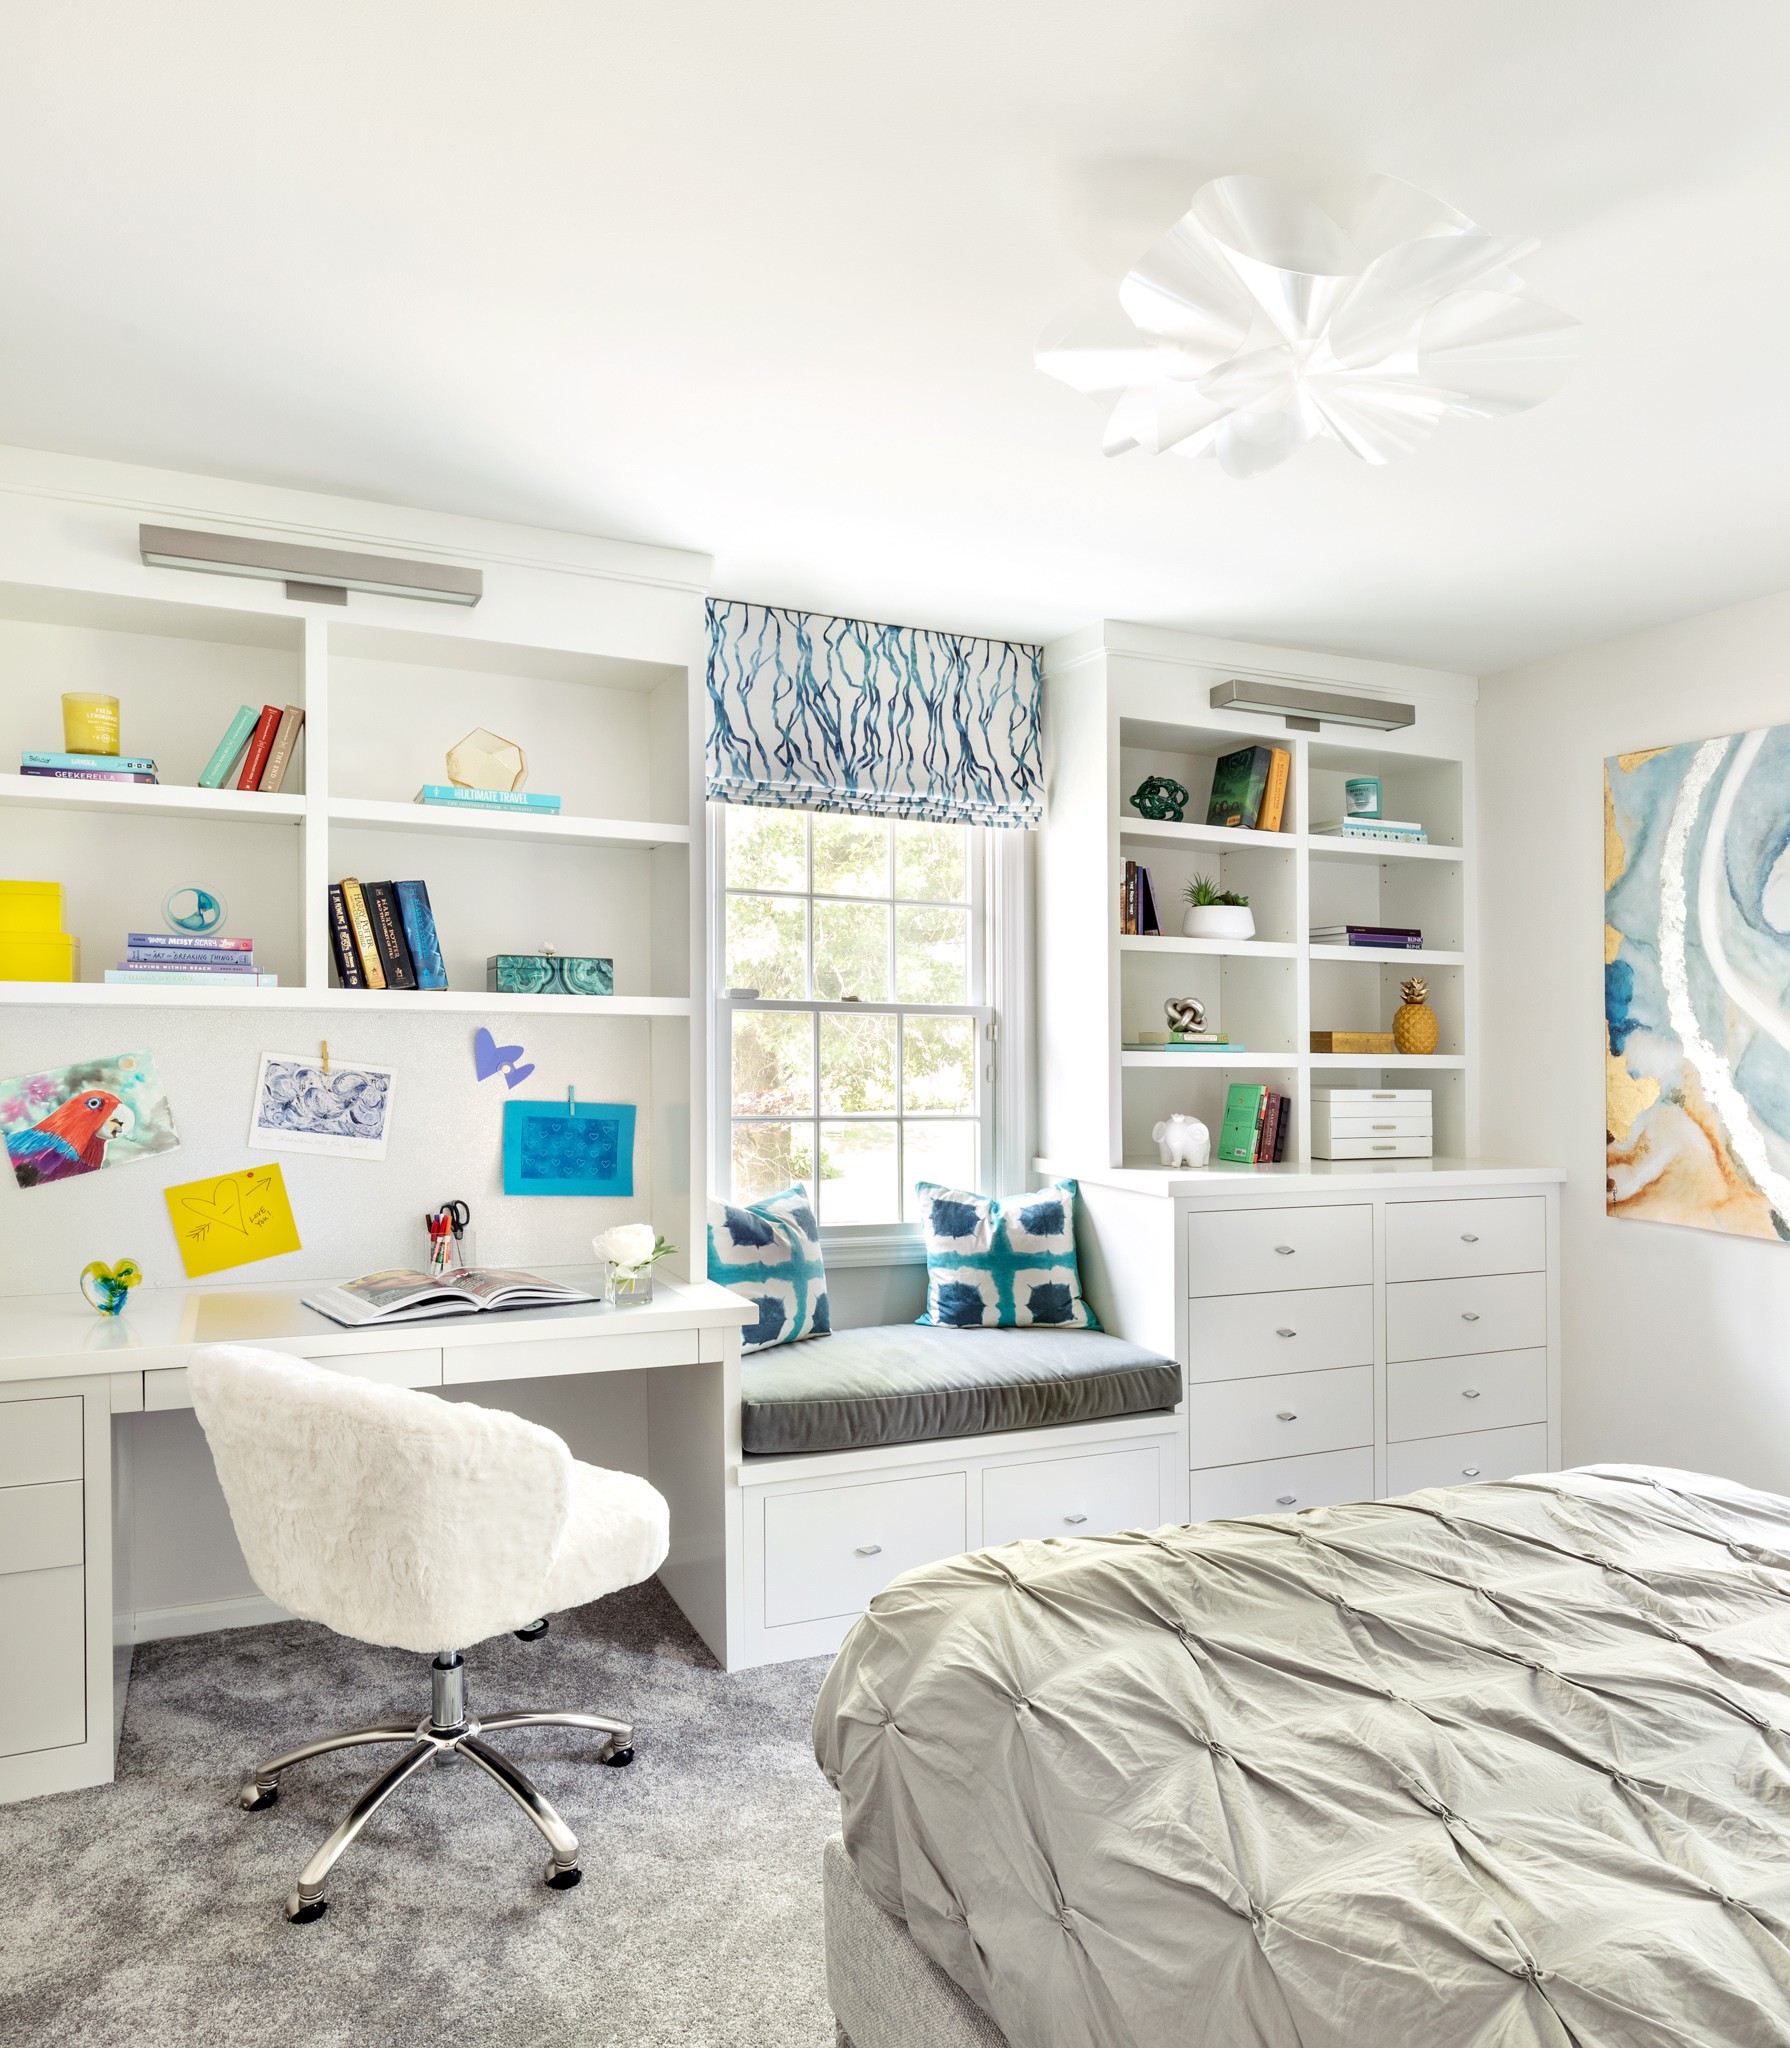 75 Beautiful Teen Room Pictures Ideas January 2021 Houzz